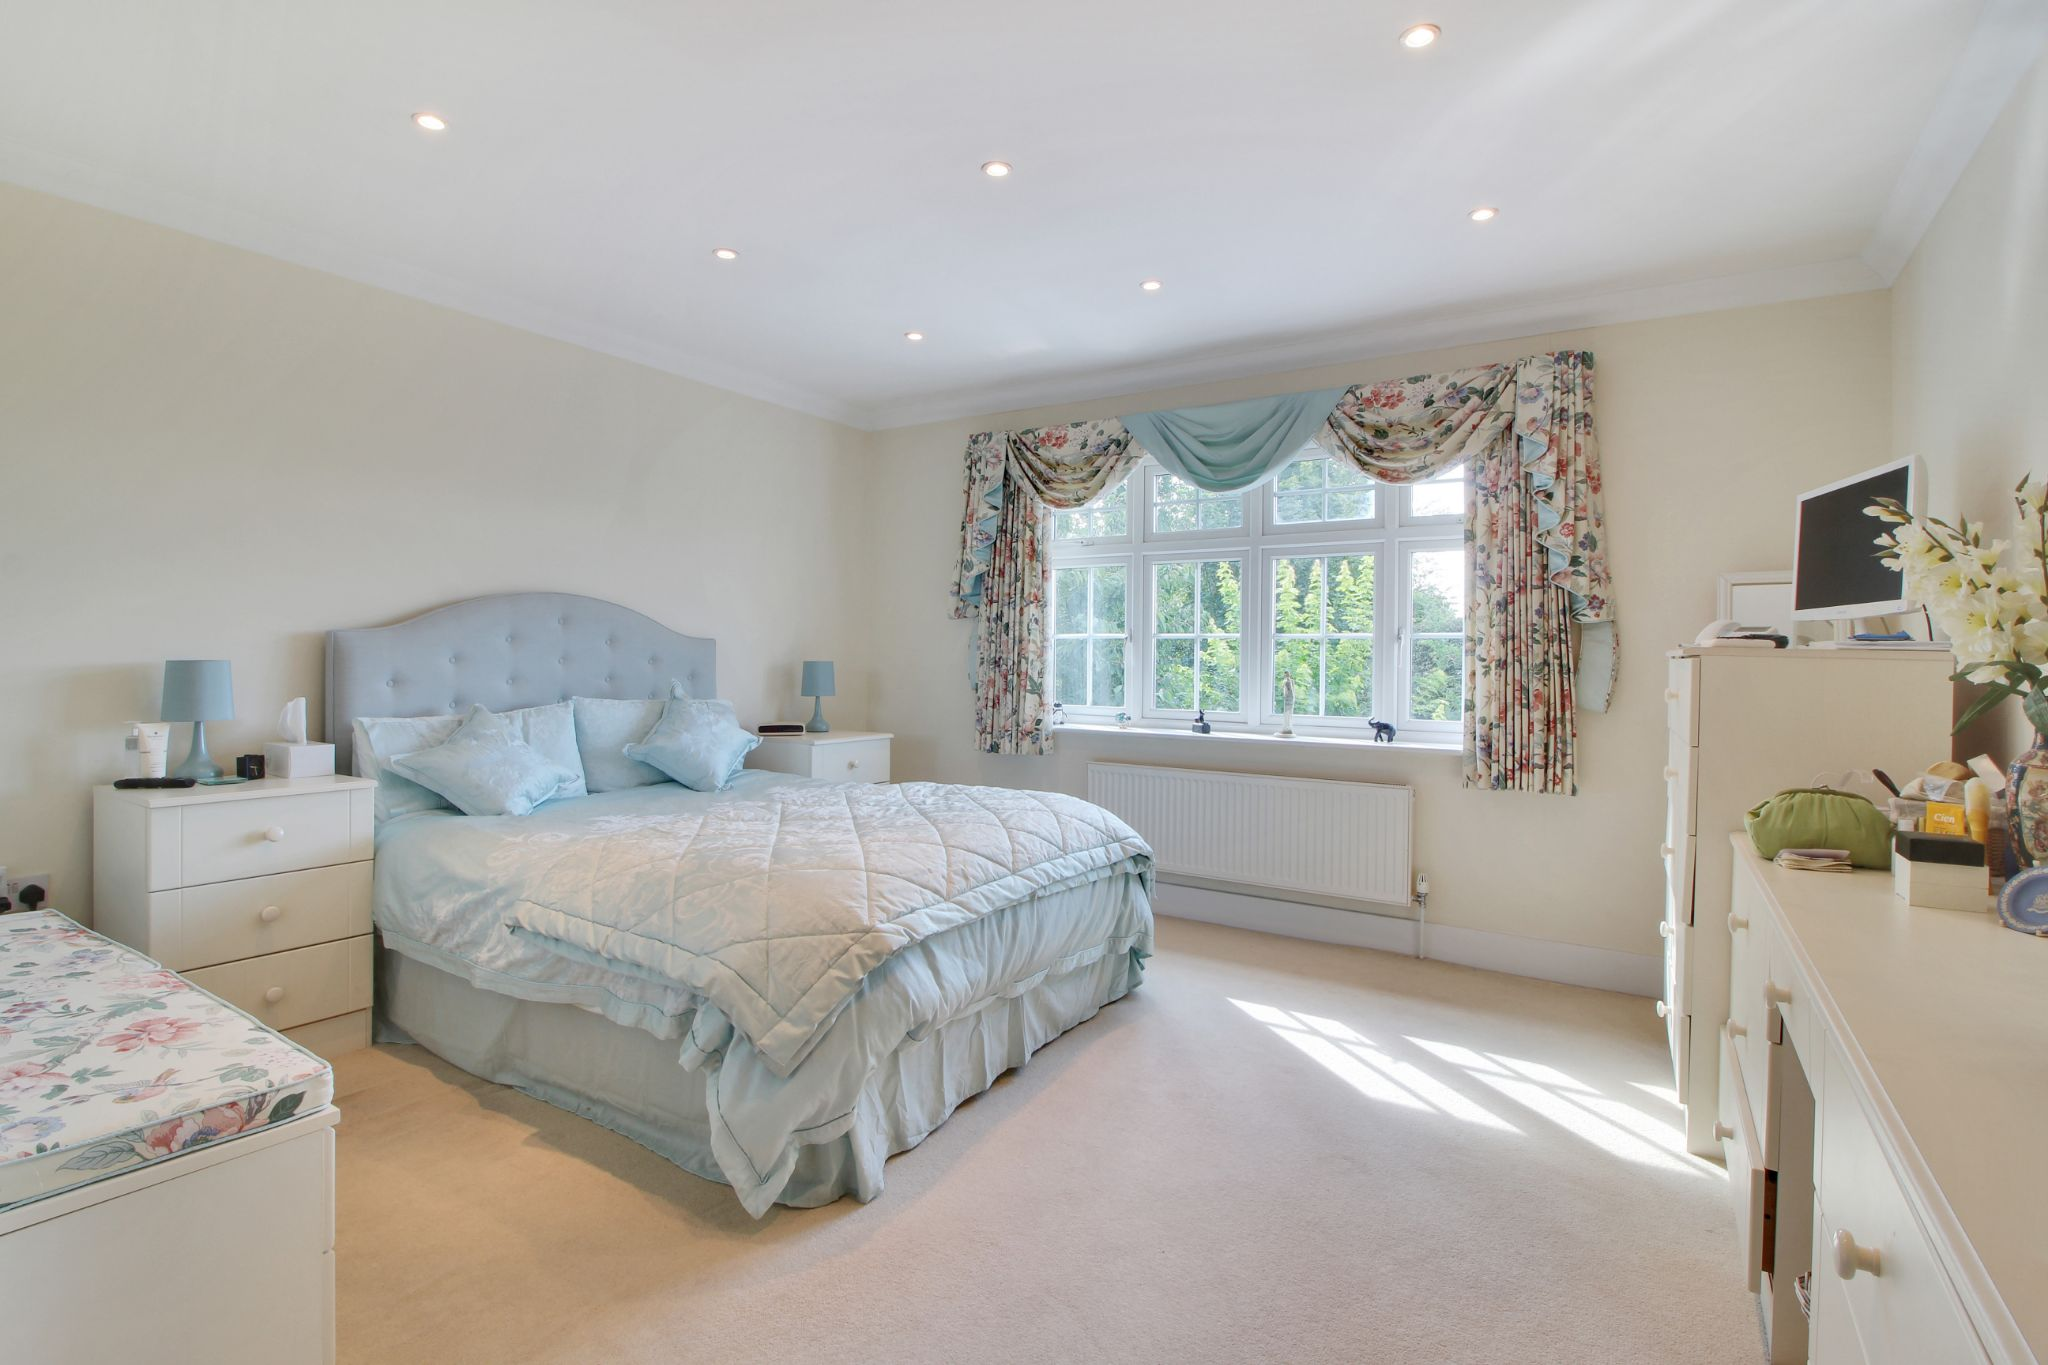 5 bedroom detached house For Sale in Sevenoaks - Photograph 8